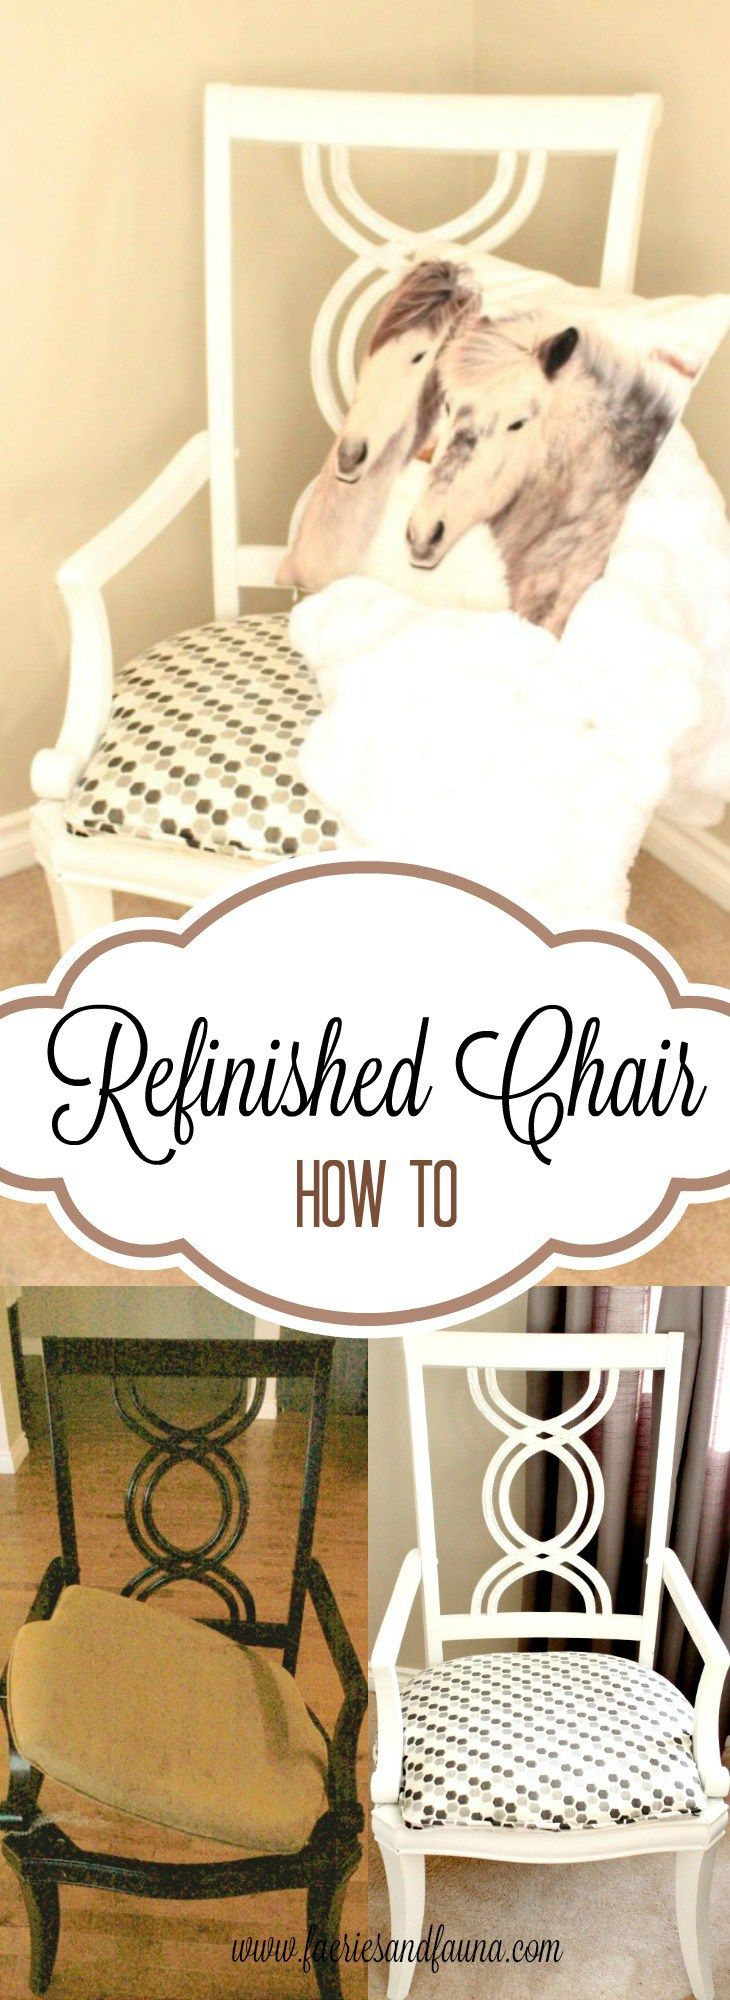 Best 25+ Refurbished chairs ideas on Pinterest | DIY furniture ...